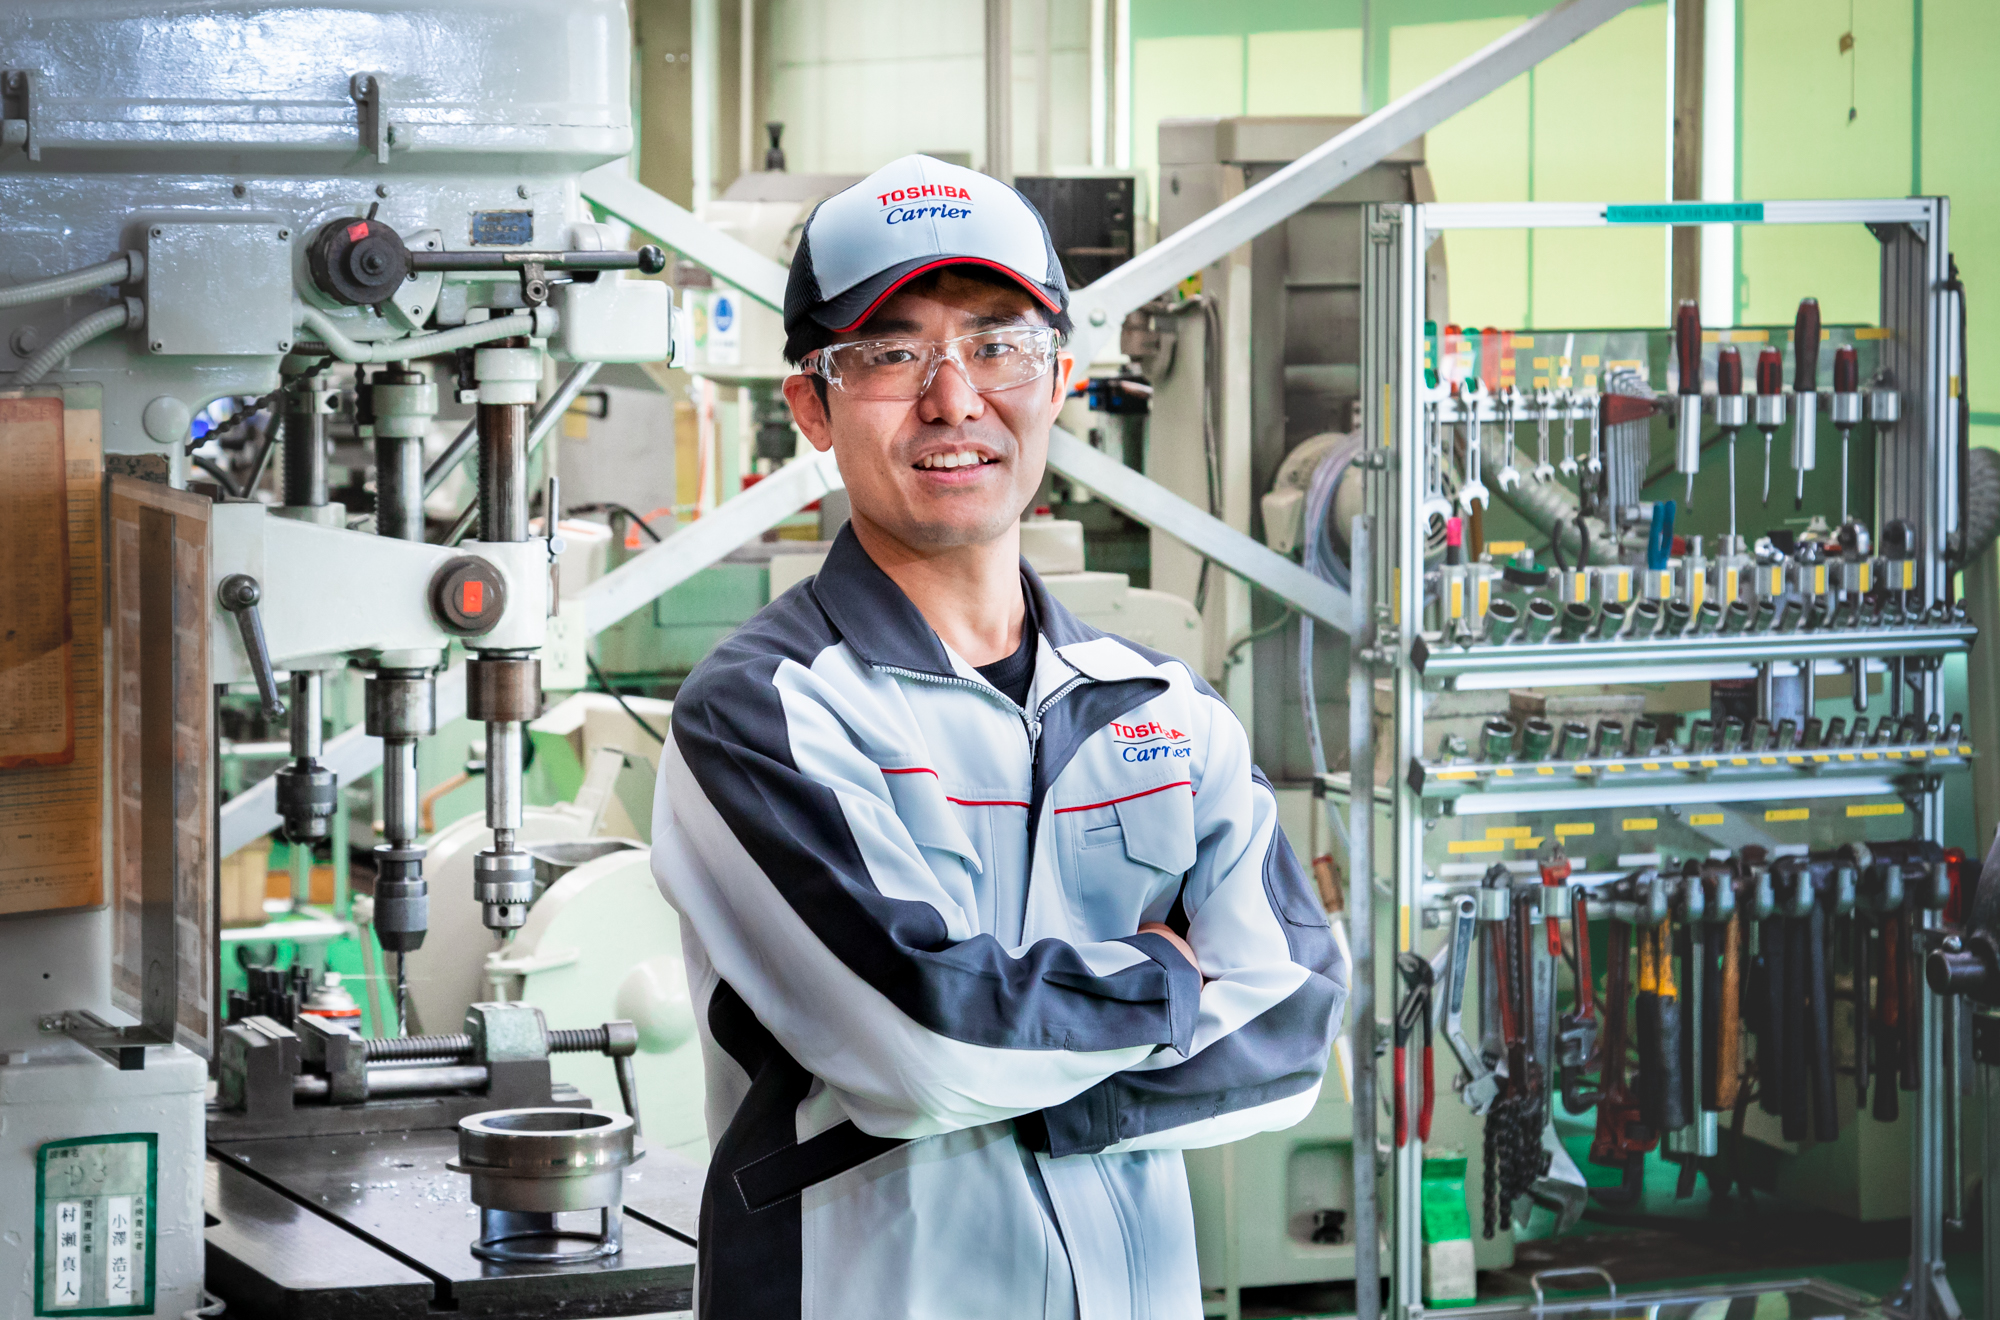 Mr. Masato Murase shares his experience as a facility maintenance engineer at Toshiba Carrier Corporation(4)